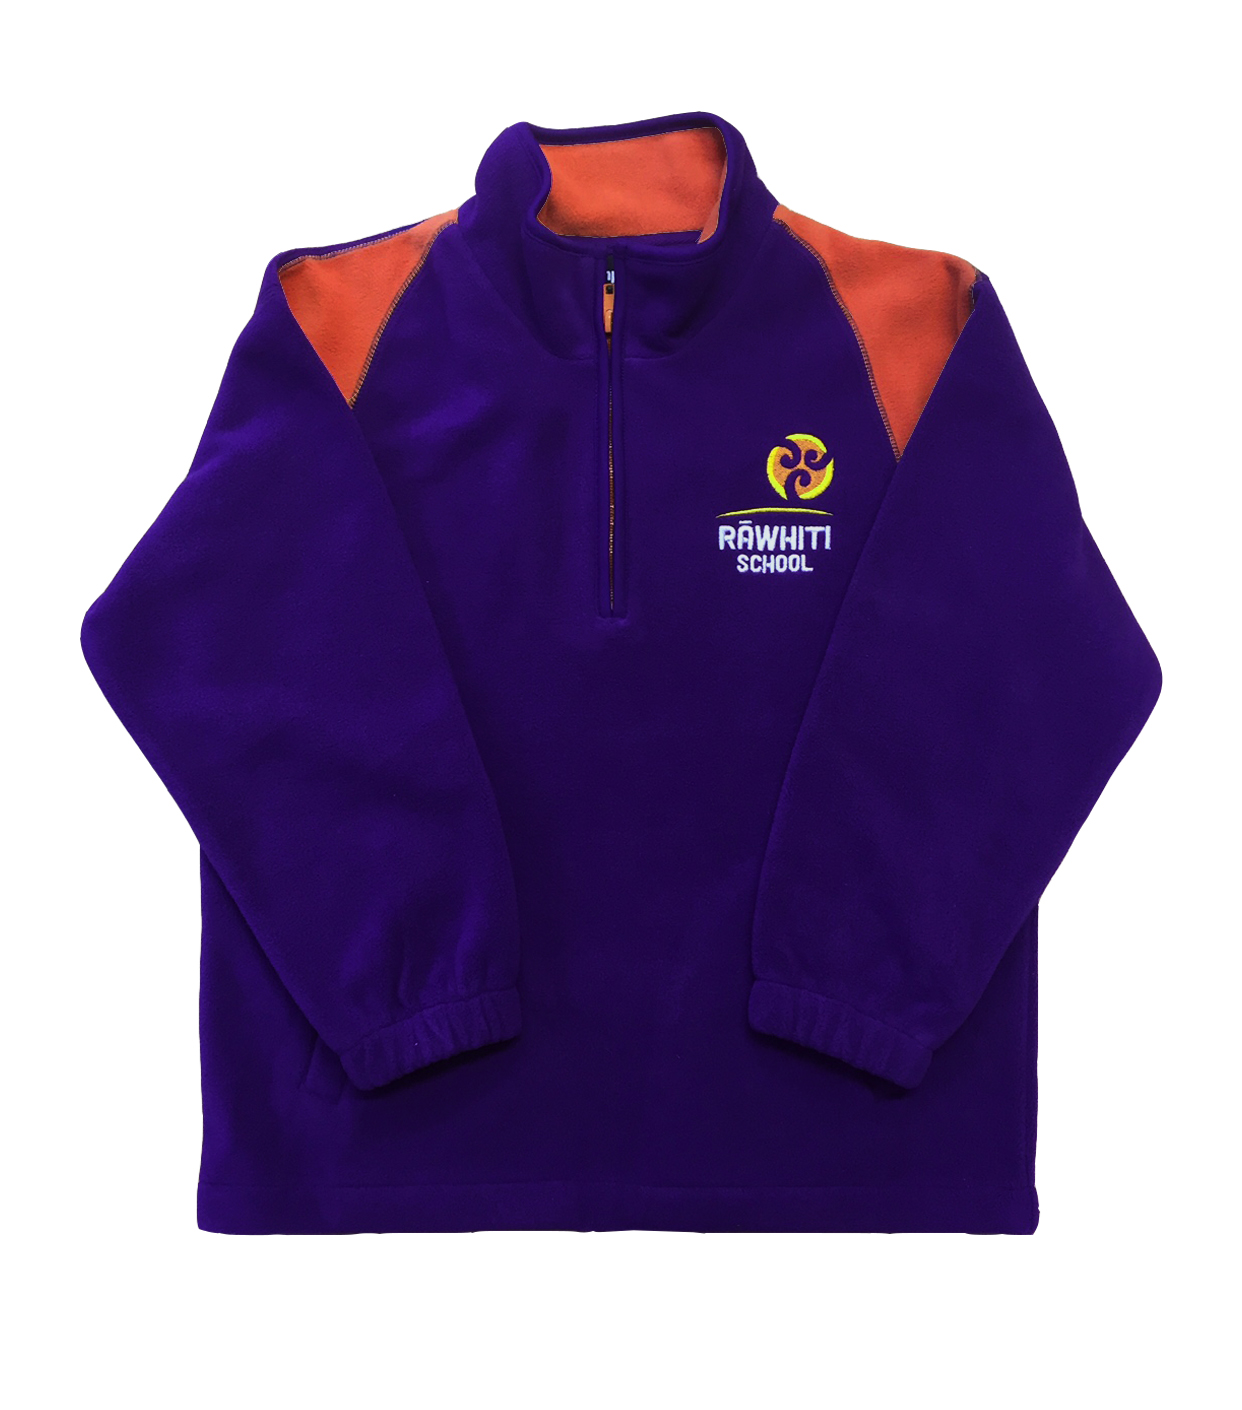 Rawhiti Uniform fleece